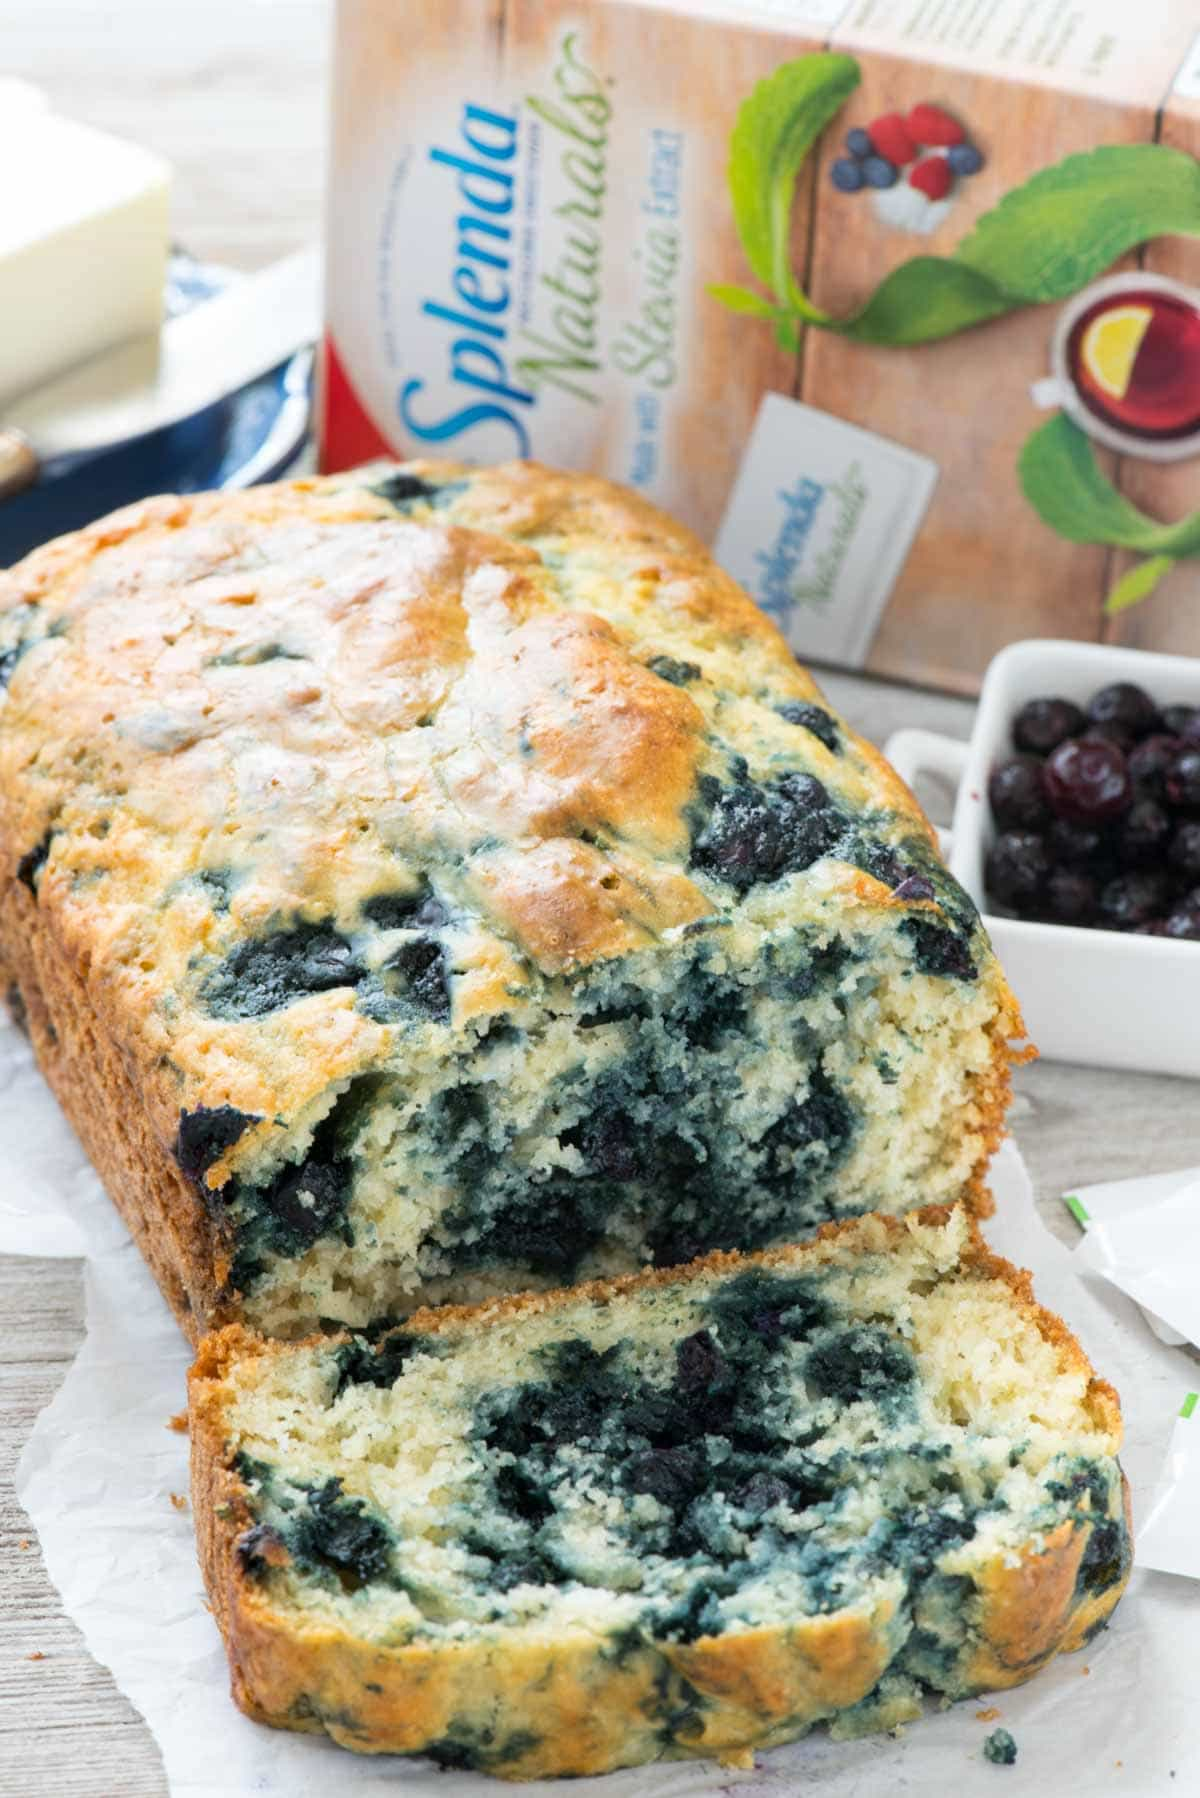 Blueberry Quick Bread - an easy blueberry bread recipe made sugar free with Splenda Naturals